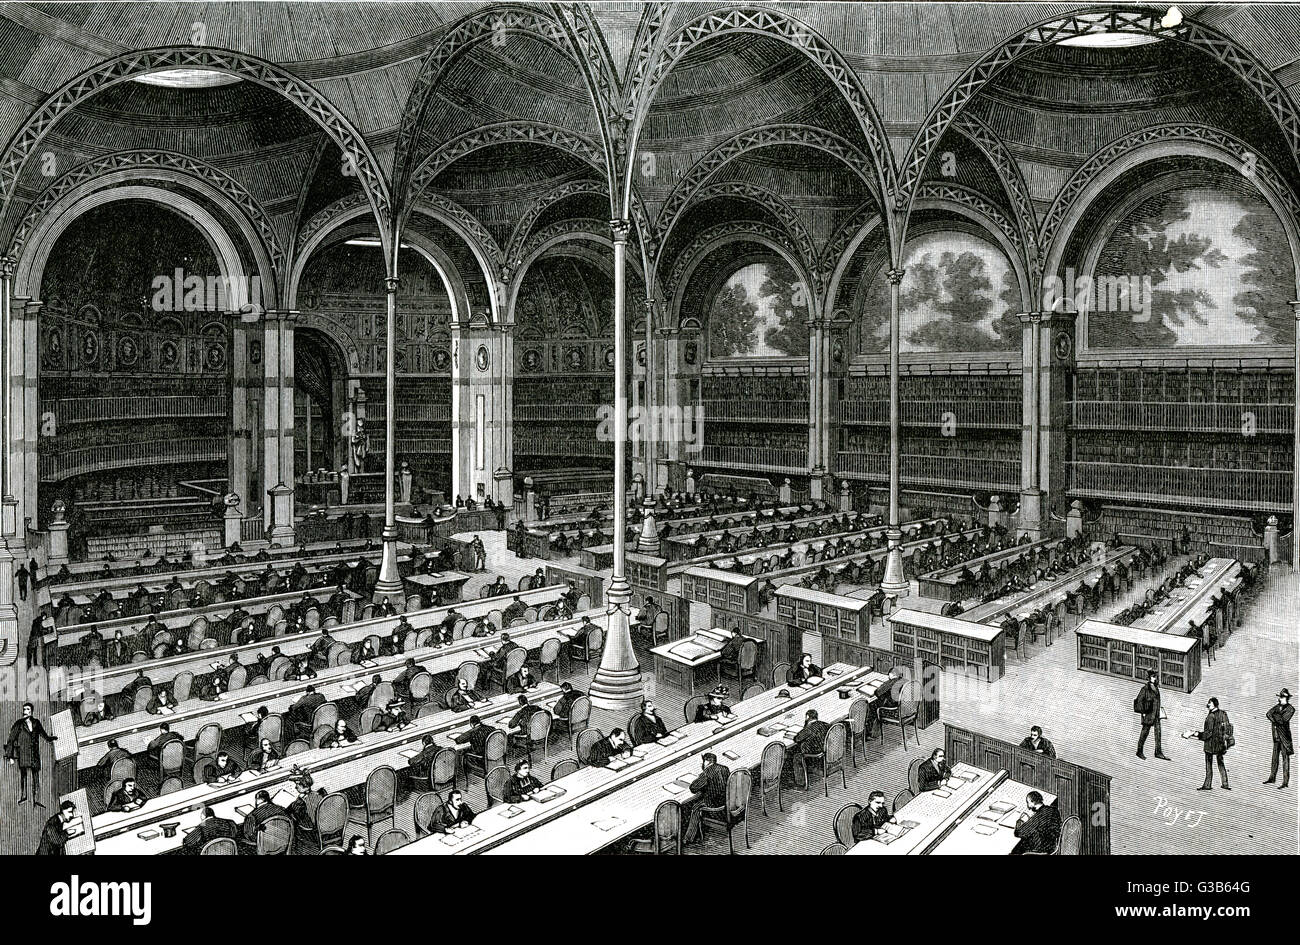 BIBLIOTHEQUE NATIONALE, Paris  Interior view of the Salle de  Travail         Date: 1893 - Stock Image